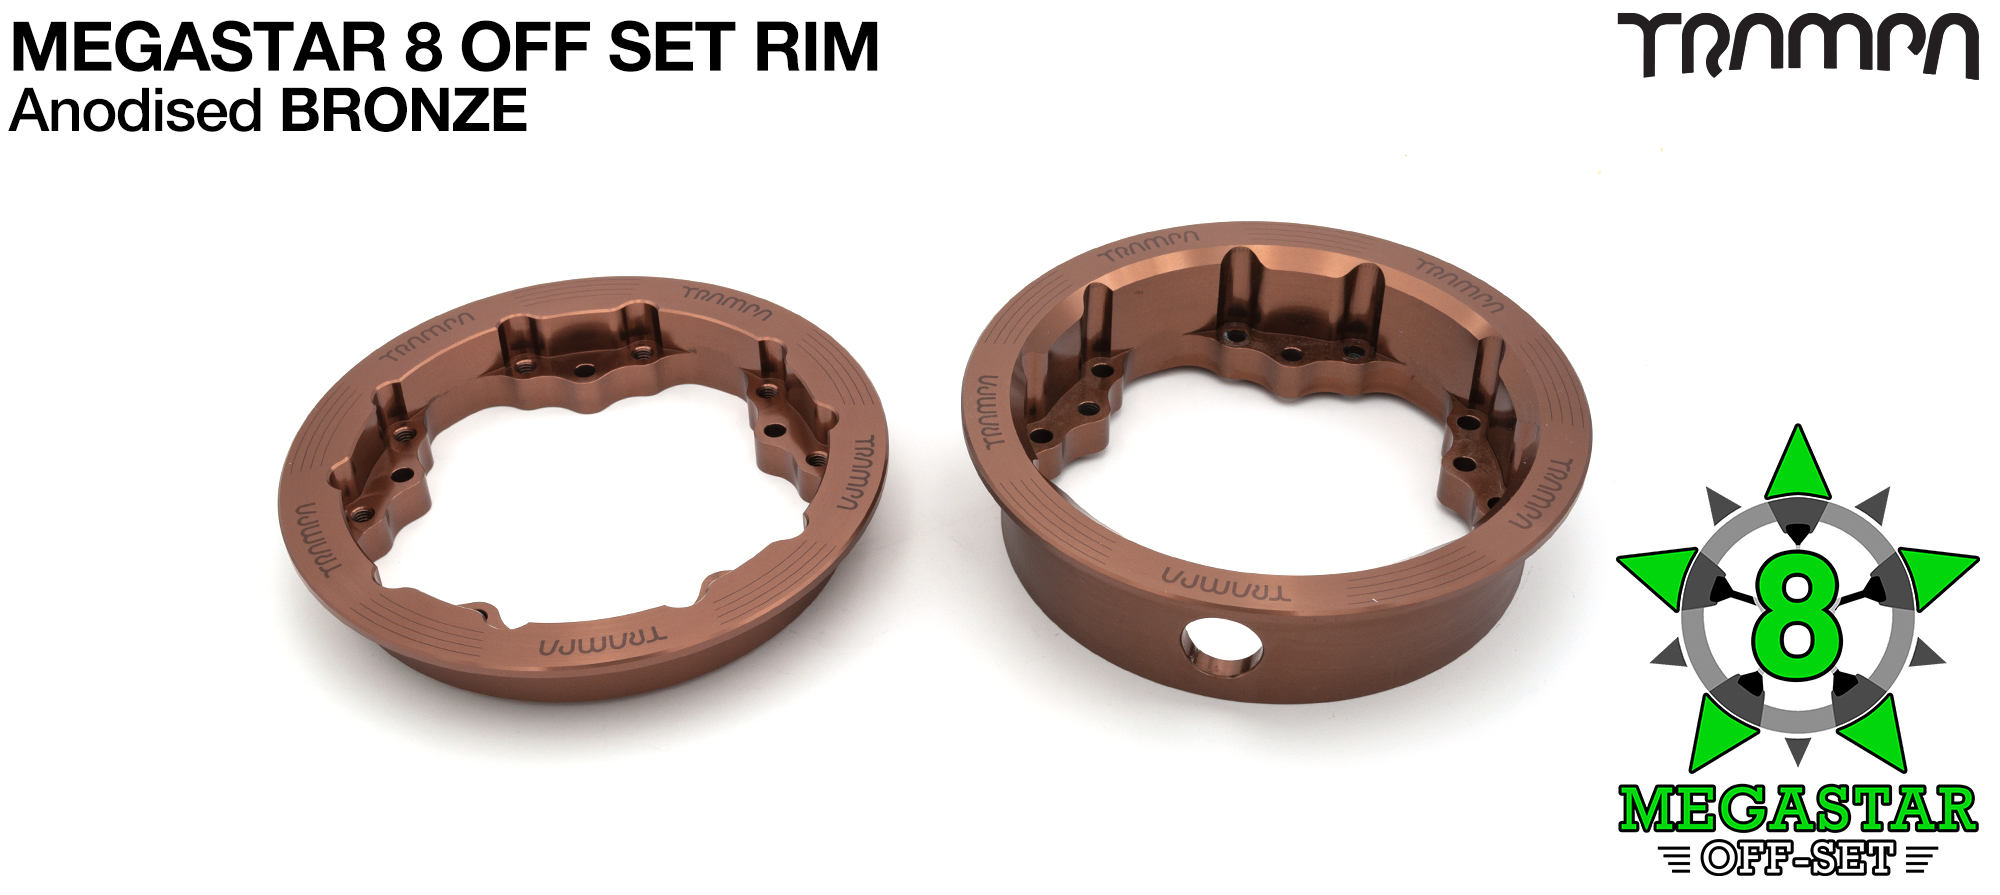 8 inch OFF-SET MEGASTAR Rims on the FRONT - BRONZE